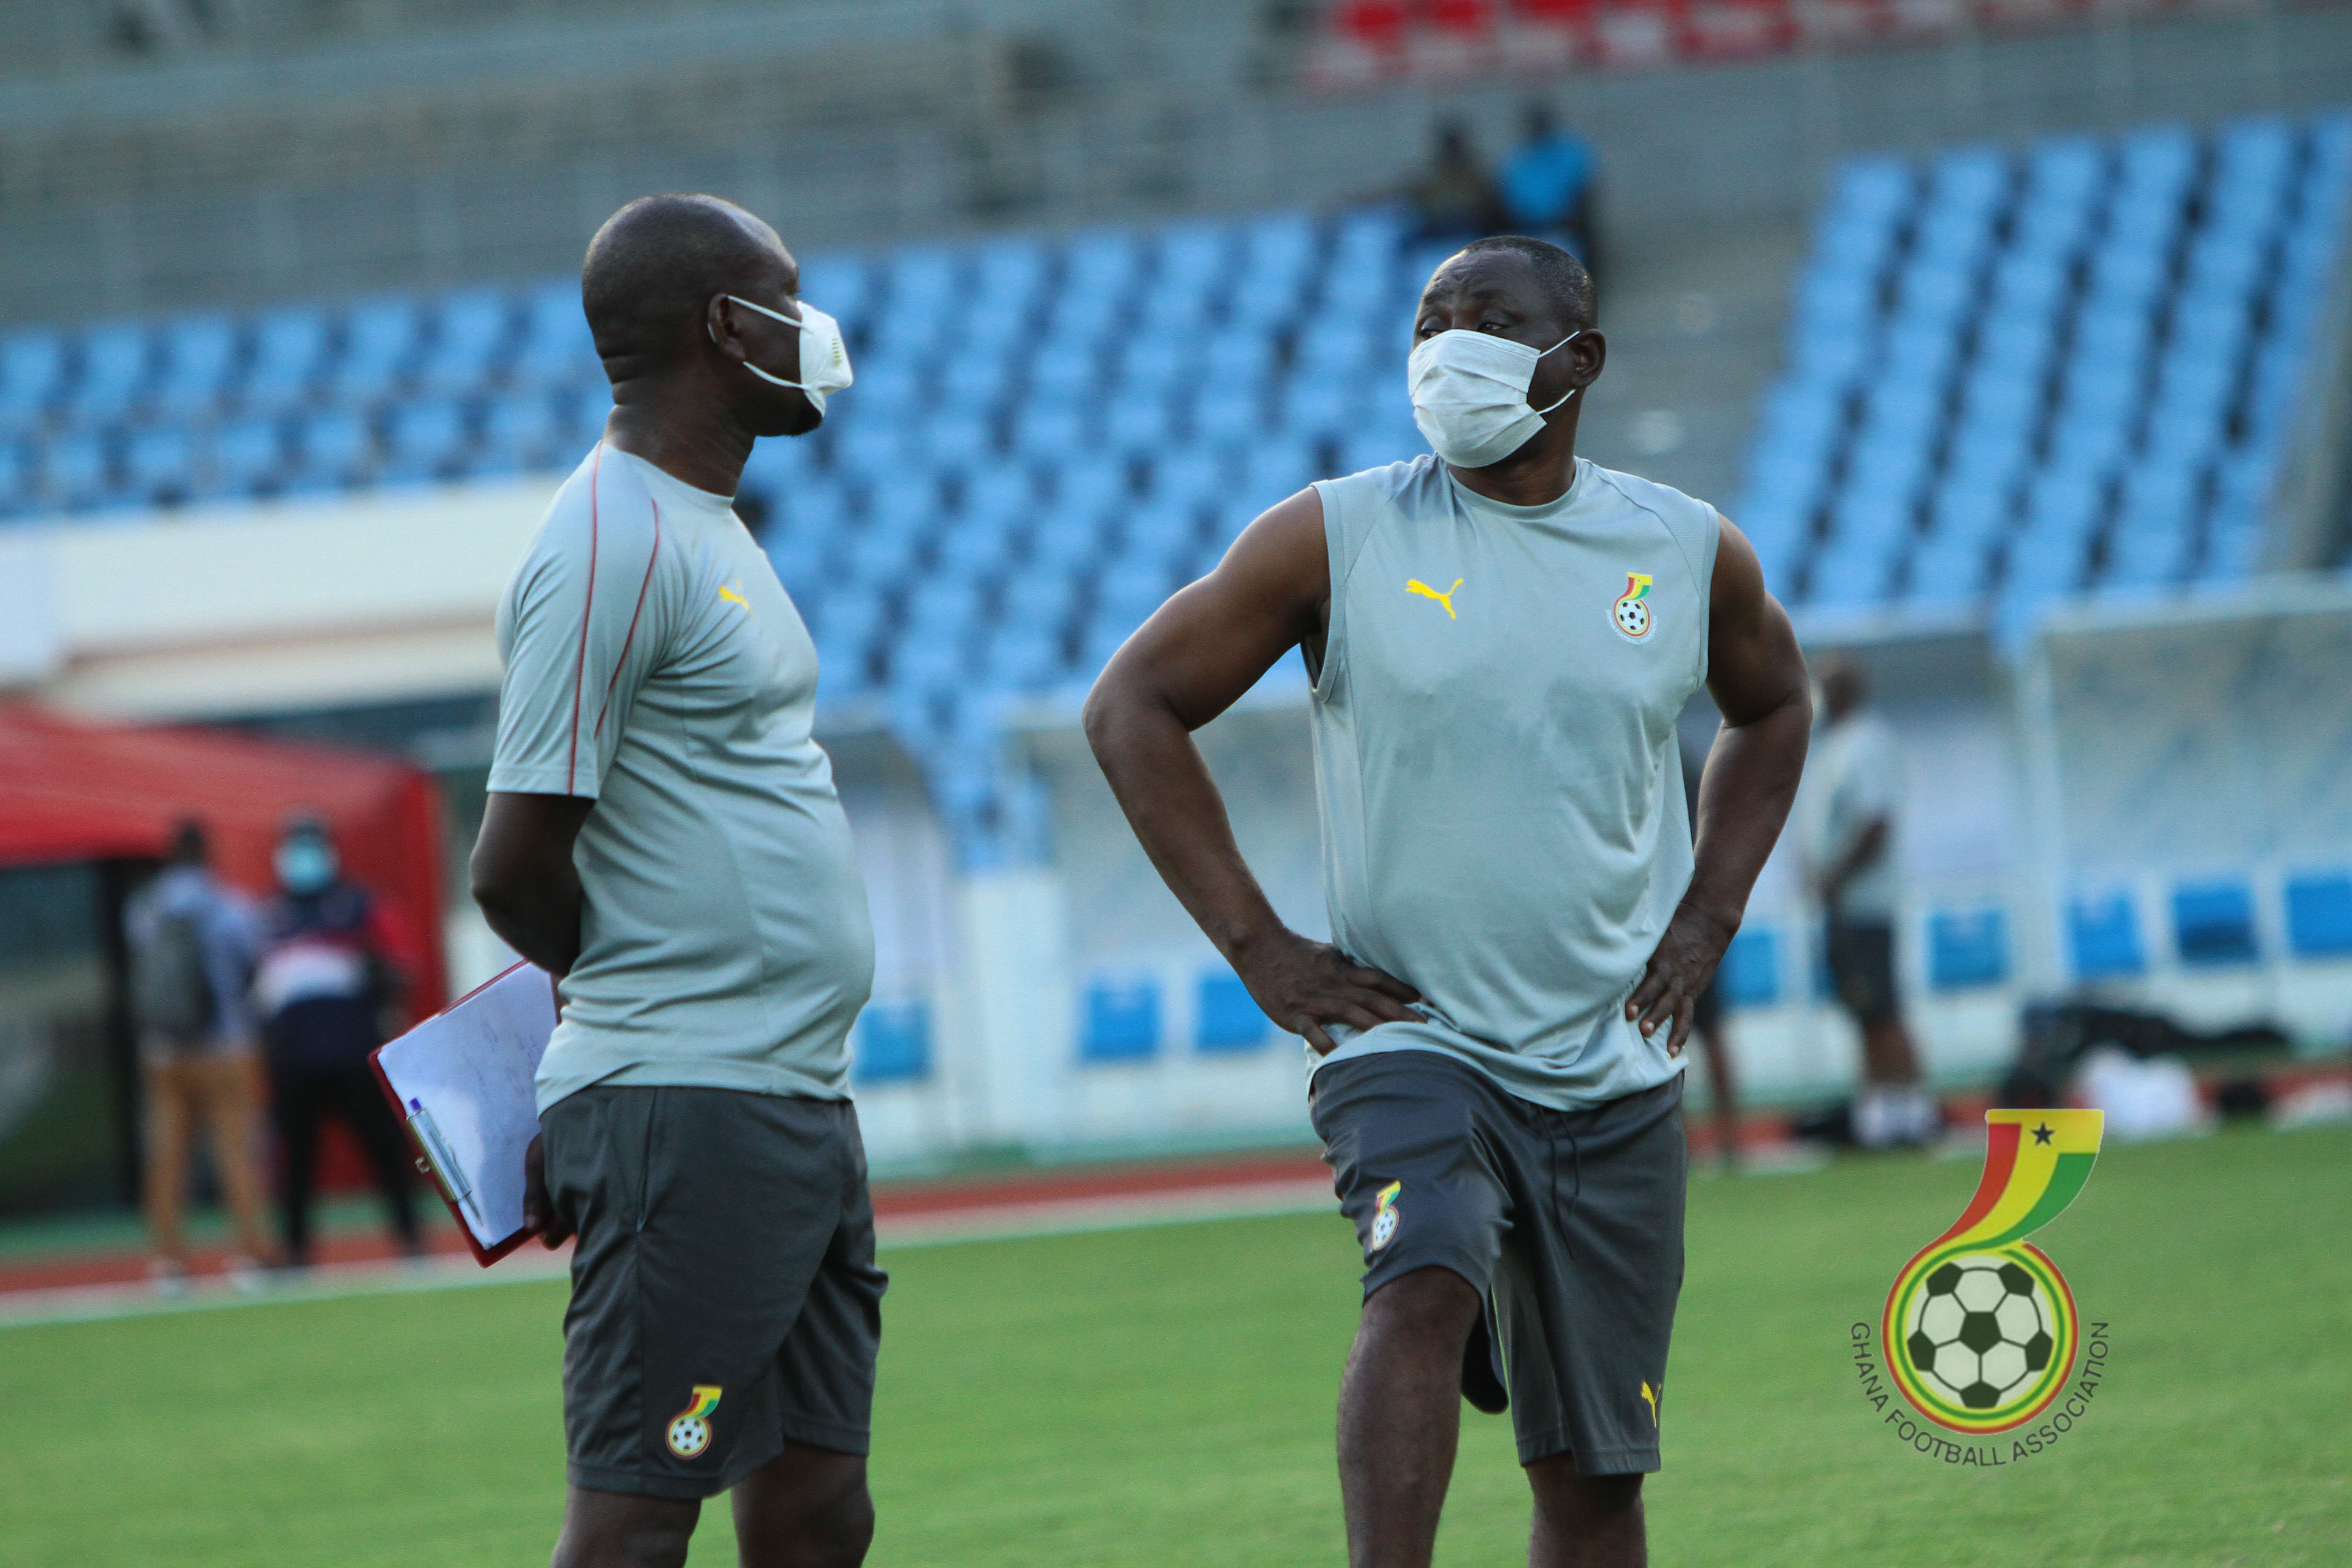 C.K Akonnor on training, Sudan, attitude of players and Partey: Transcript